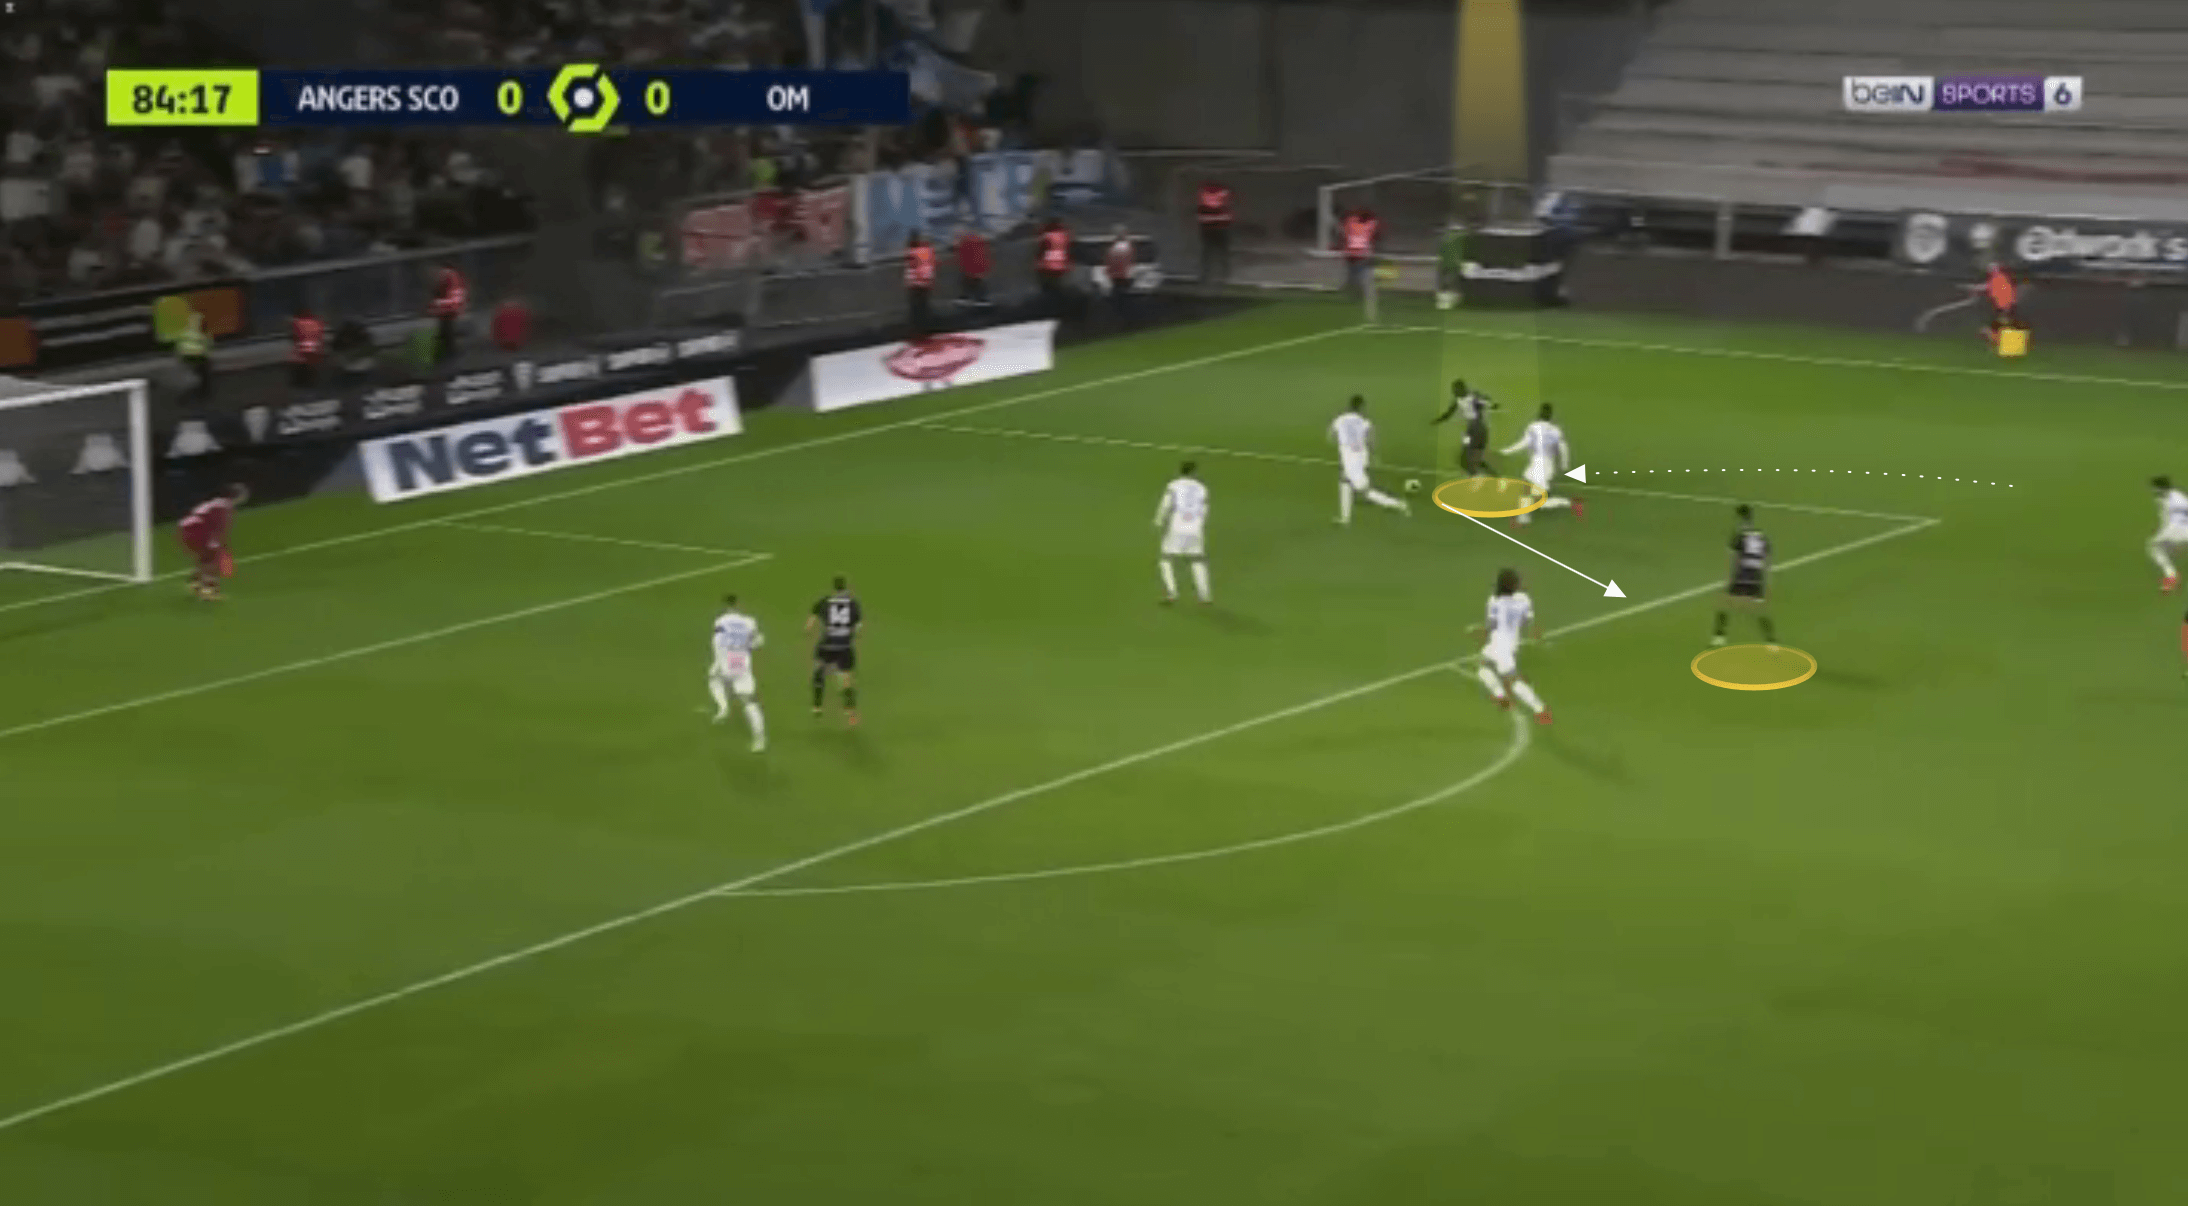 Ligue 1 2021/22: Mohamed Ali Cho at Angers - scout report tactical analysis tactics